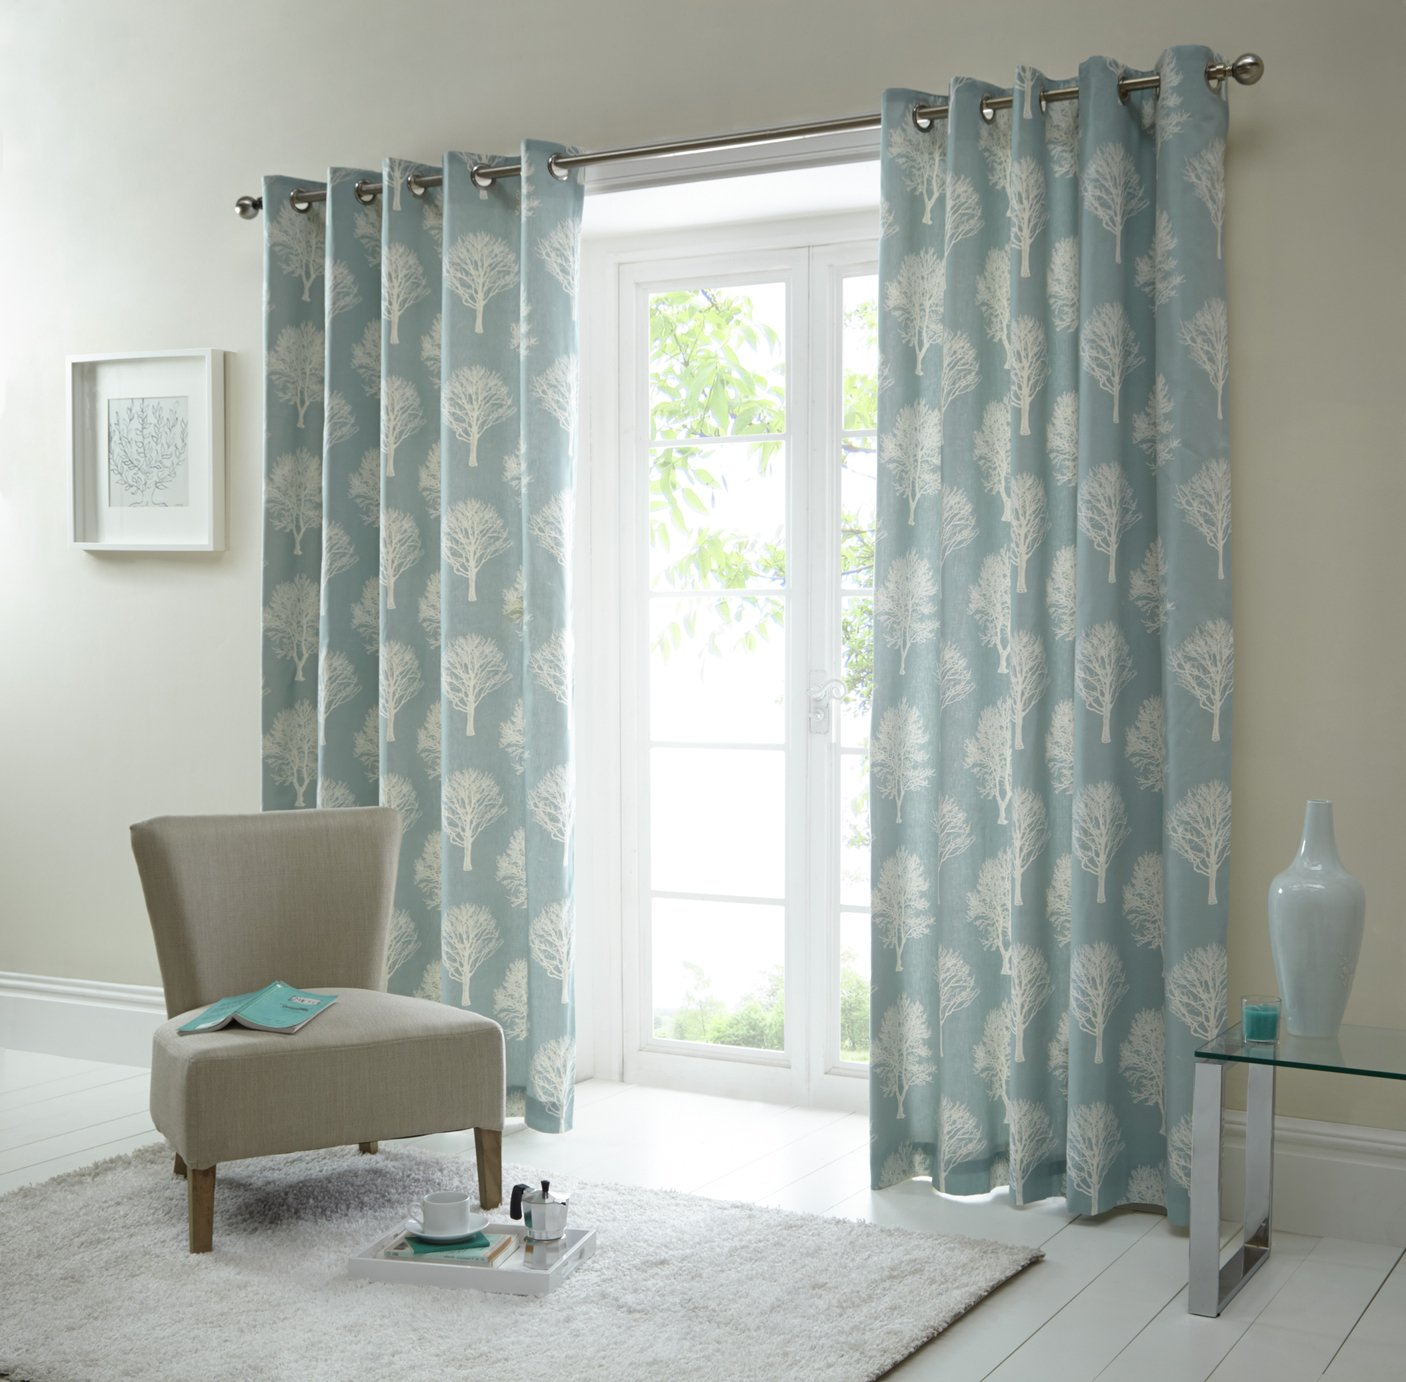 Buy Fusion Woodland Trees Curtains - 167x182cm - Duck Egg